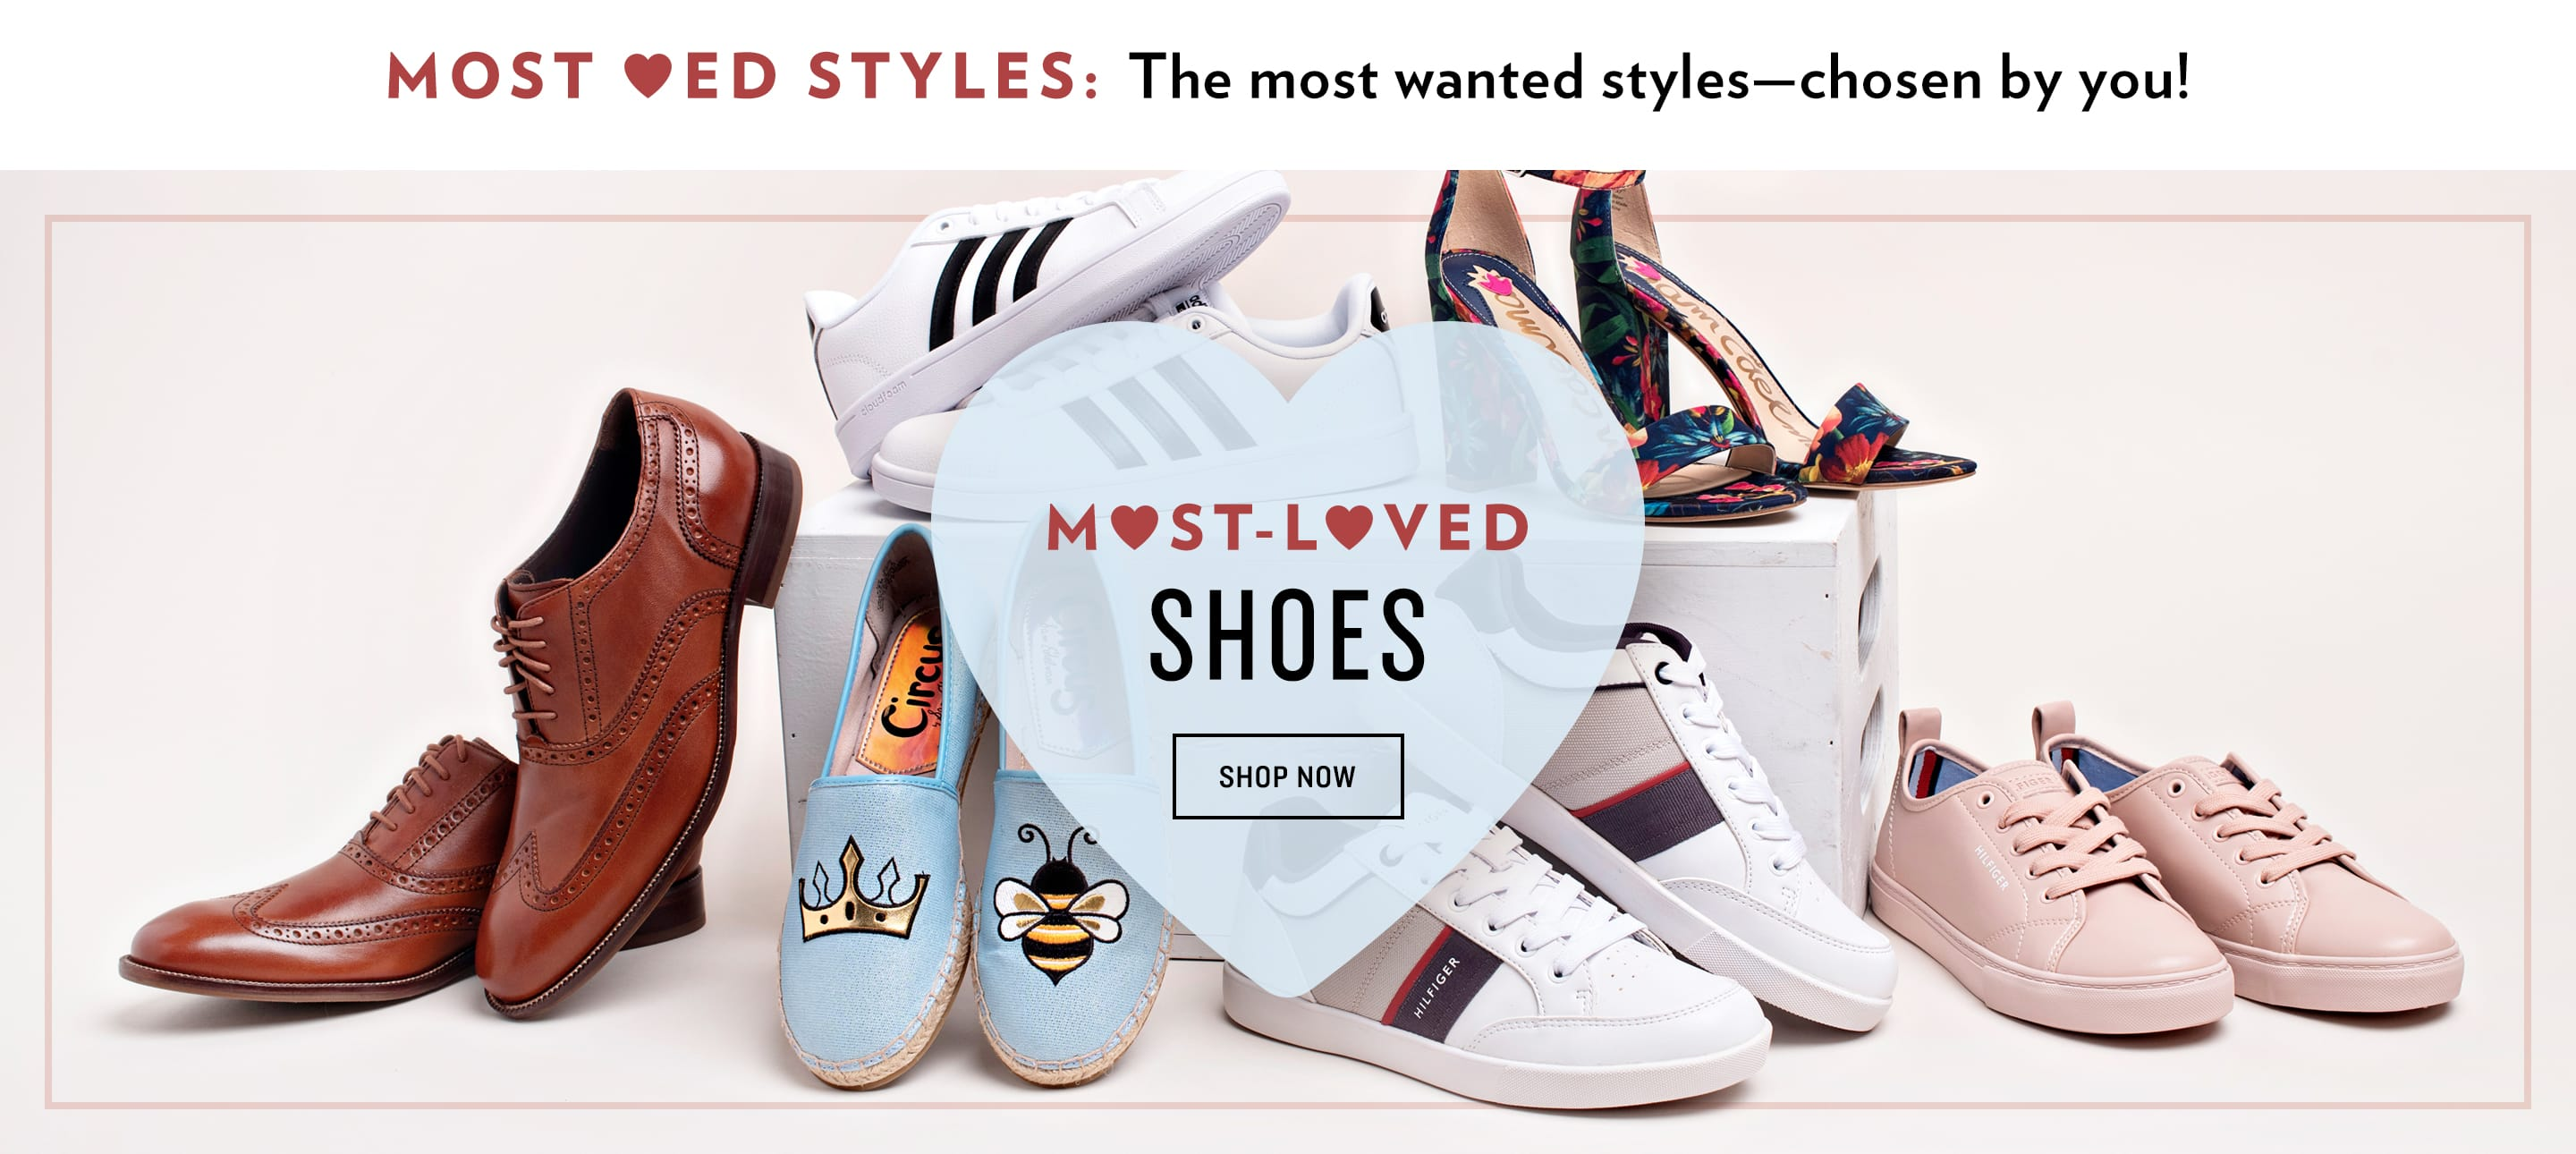 Most-Loved Shoes